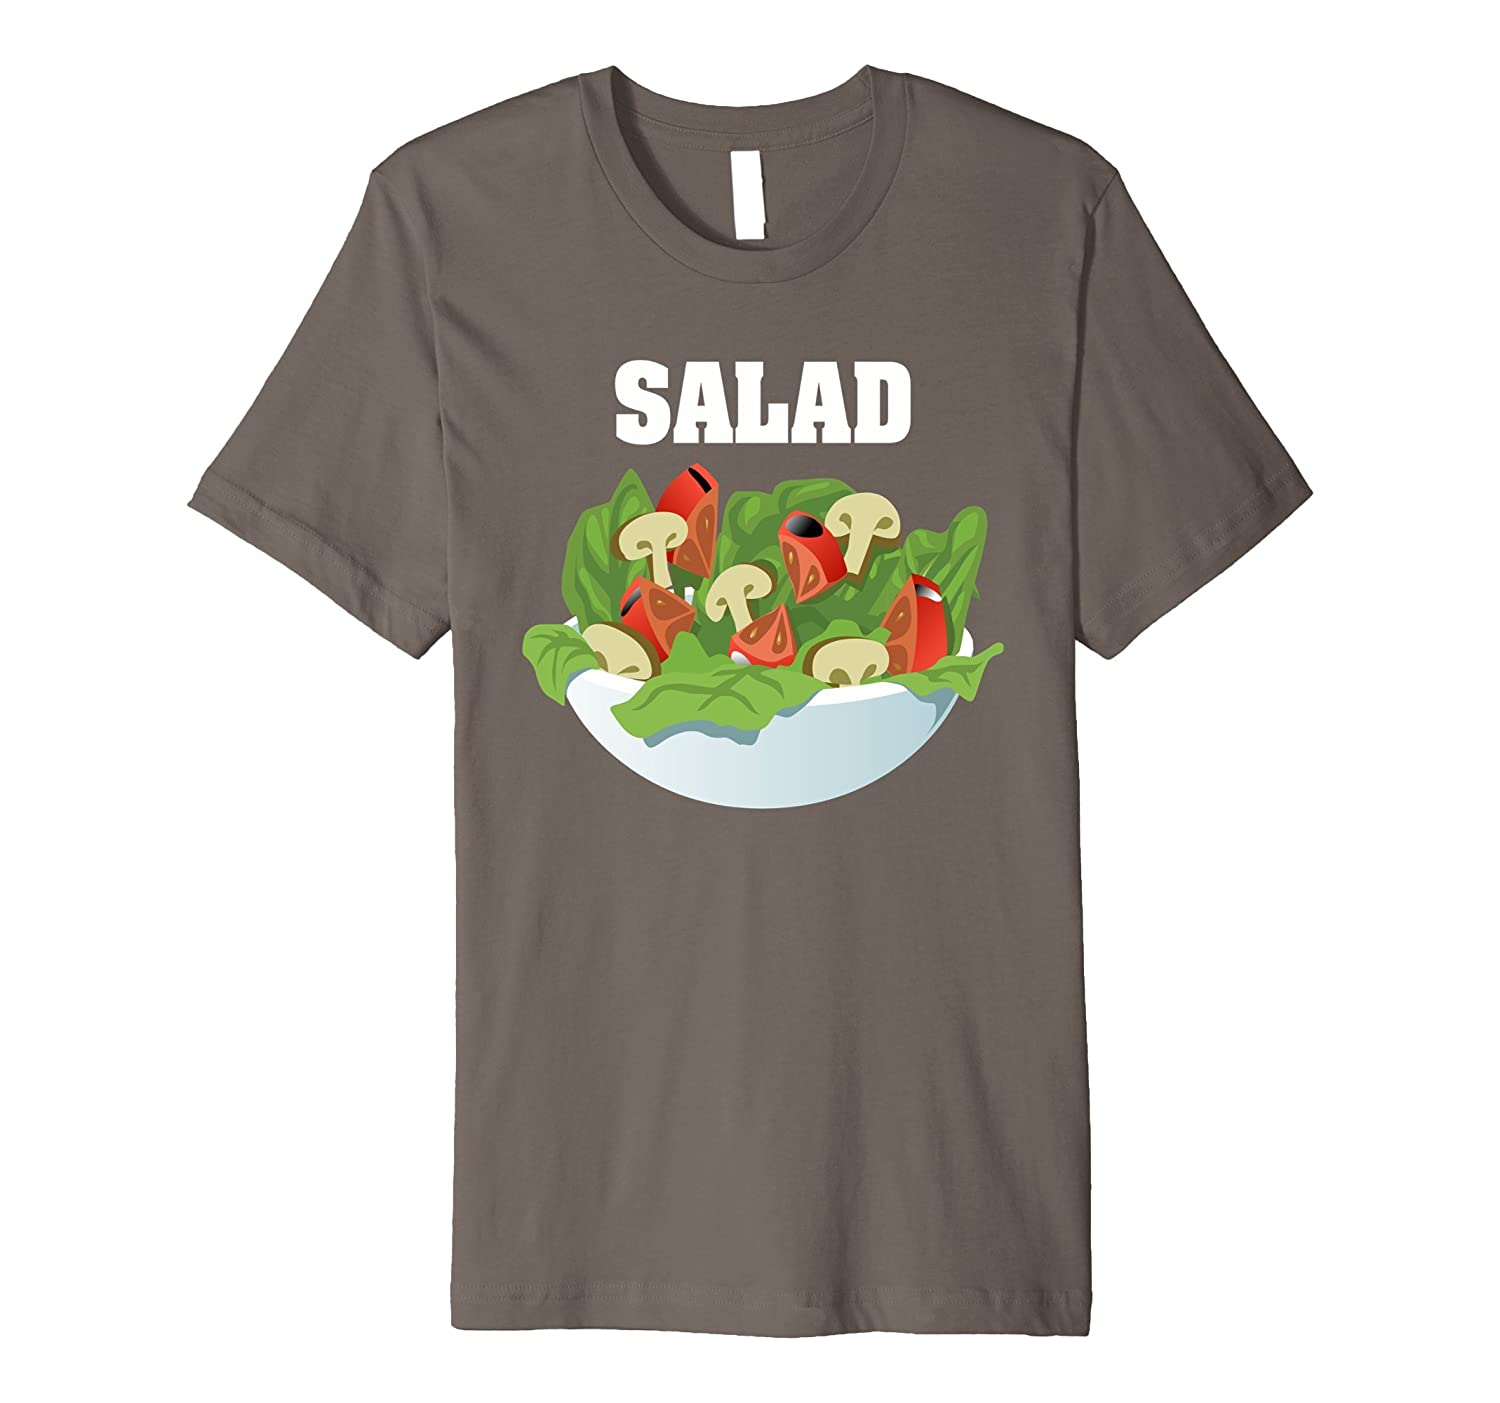 Salad Group Costume Premium Shirt - Burger, Fries & Salad